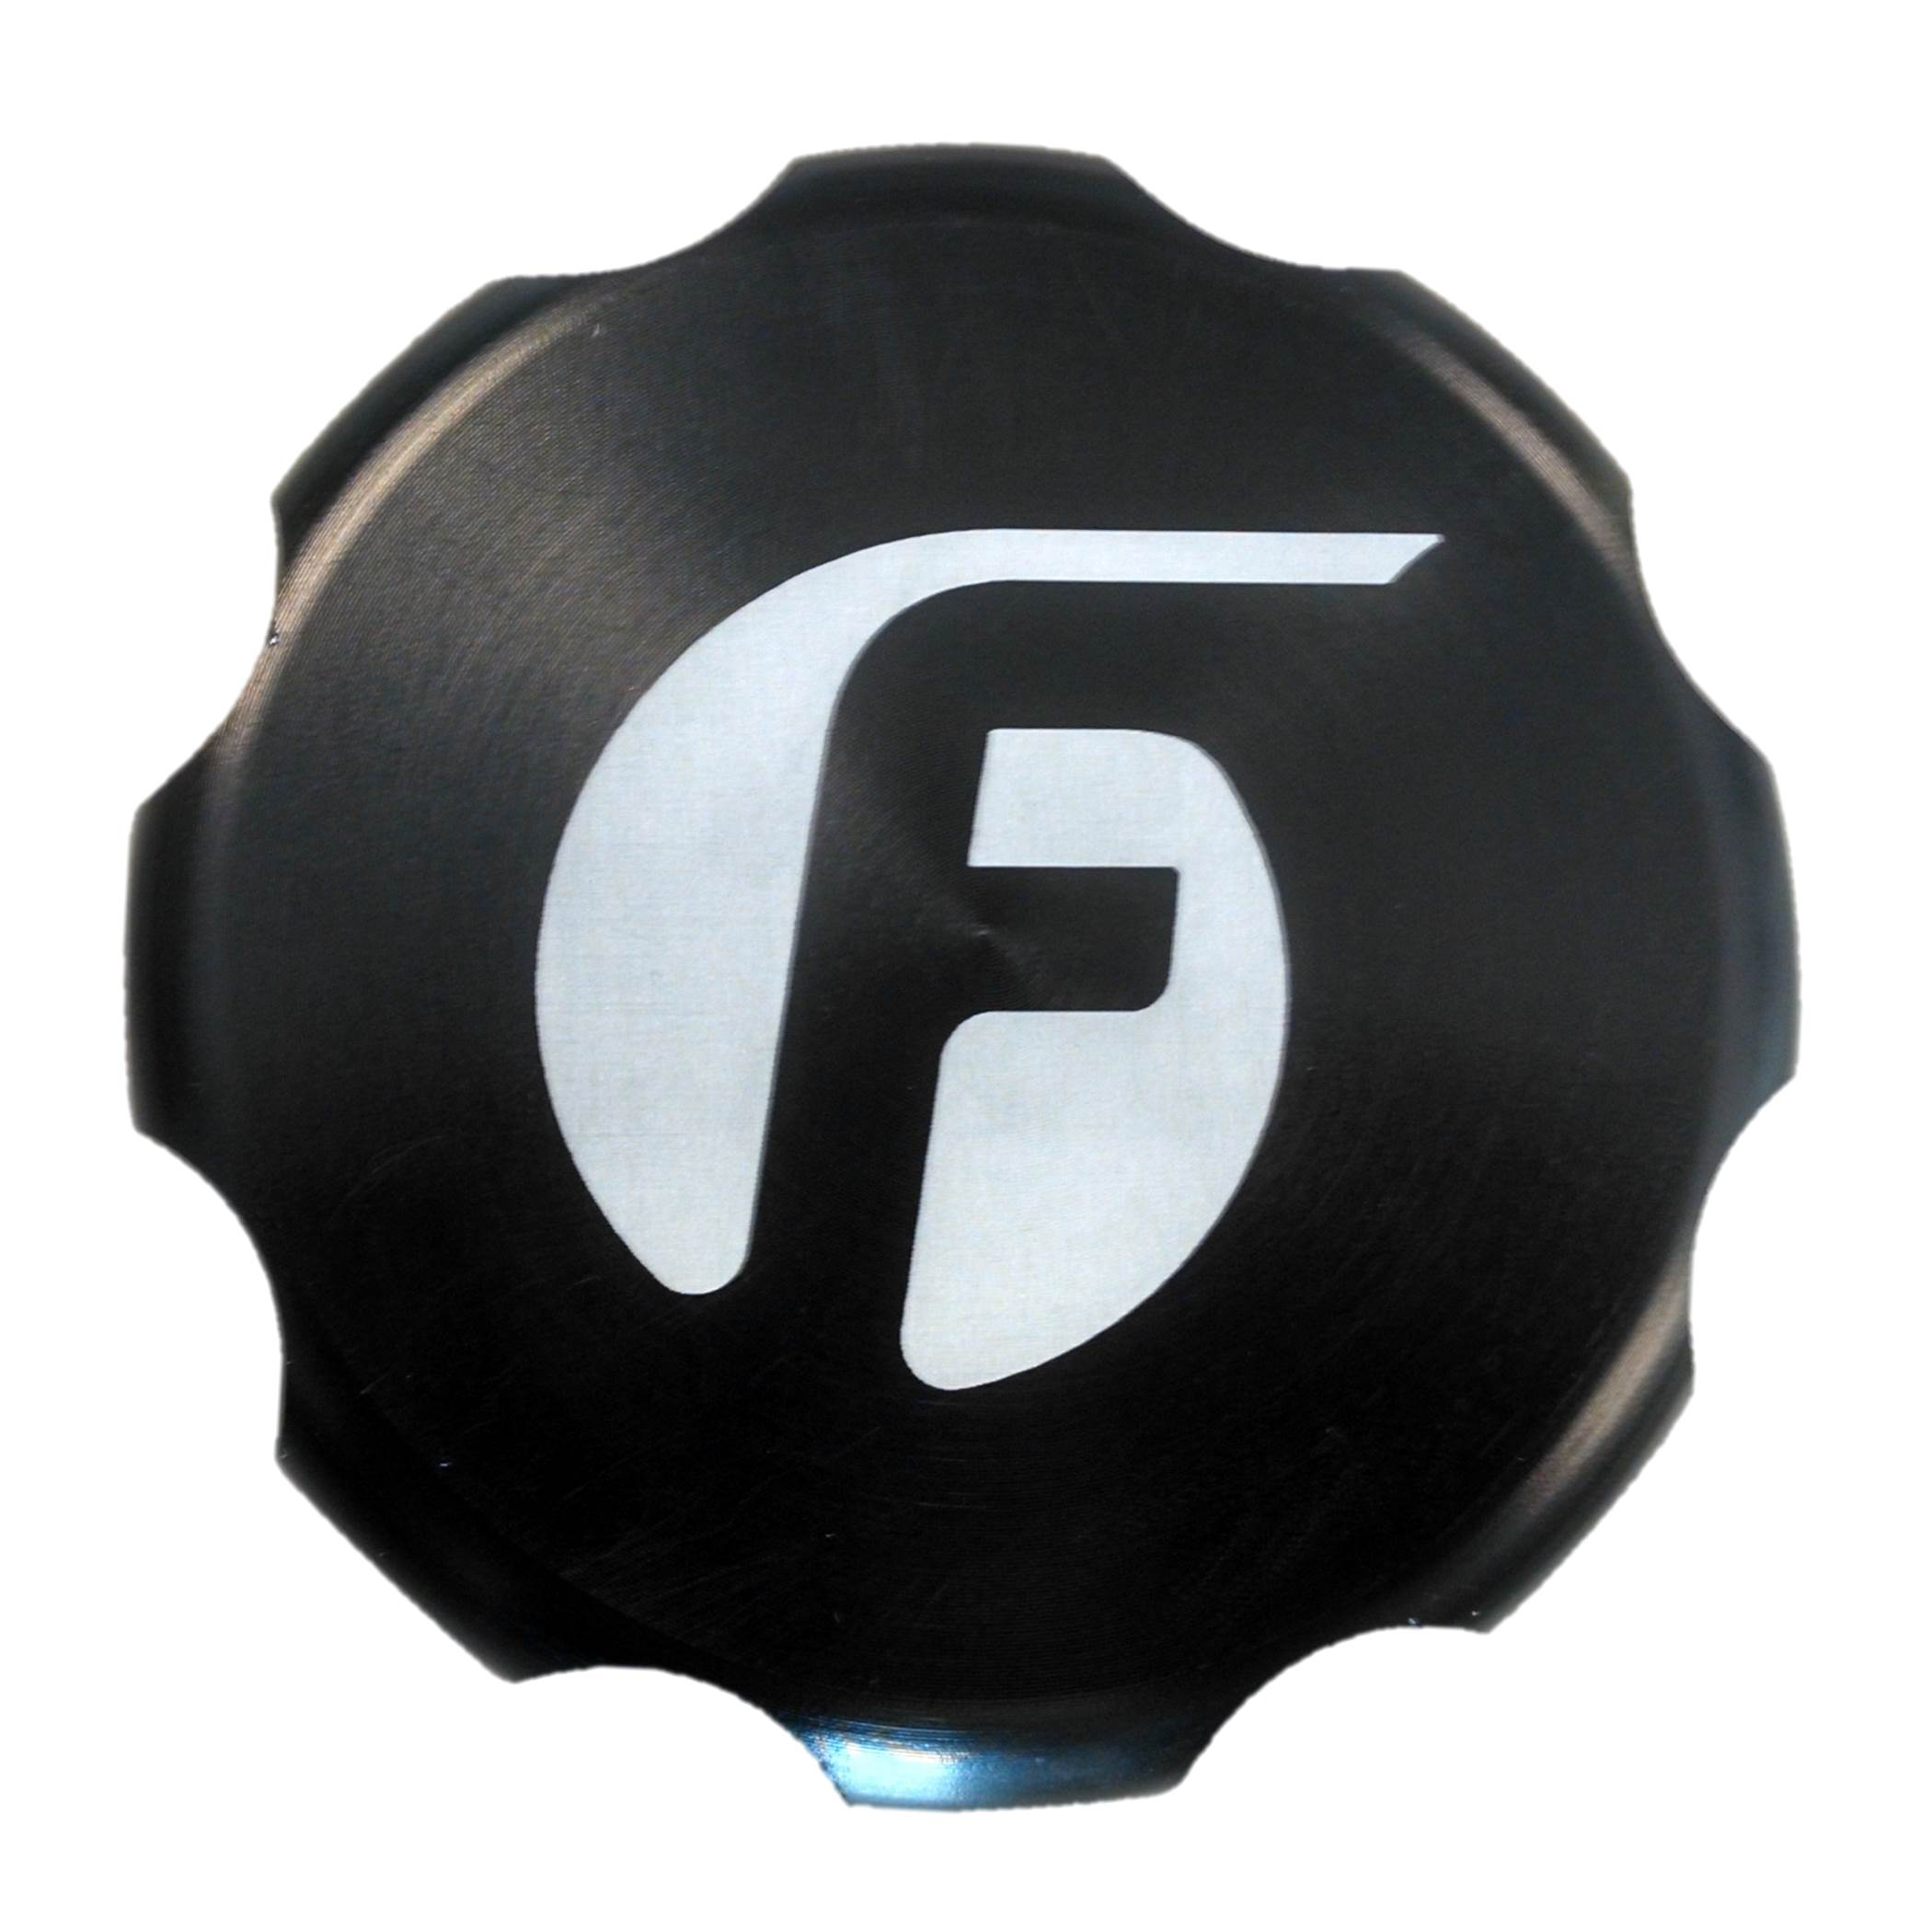 Fleece Performance Cummins Billet Oil Cap Cover - Black - Fleece Performance FPE-OC-CR-F